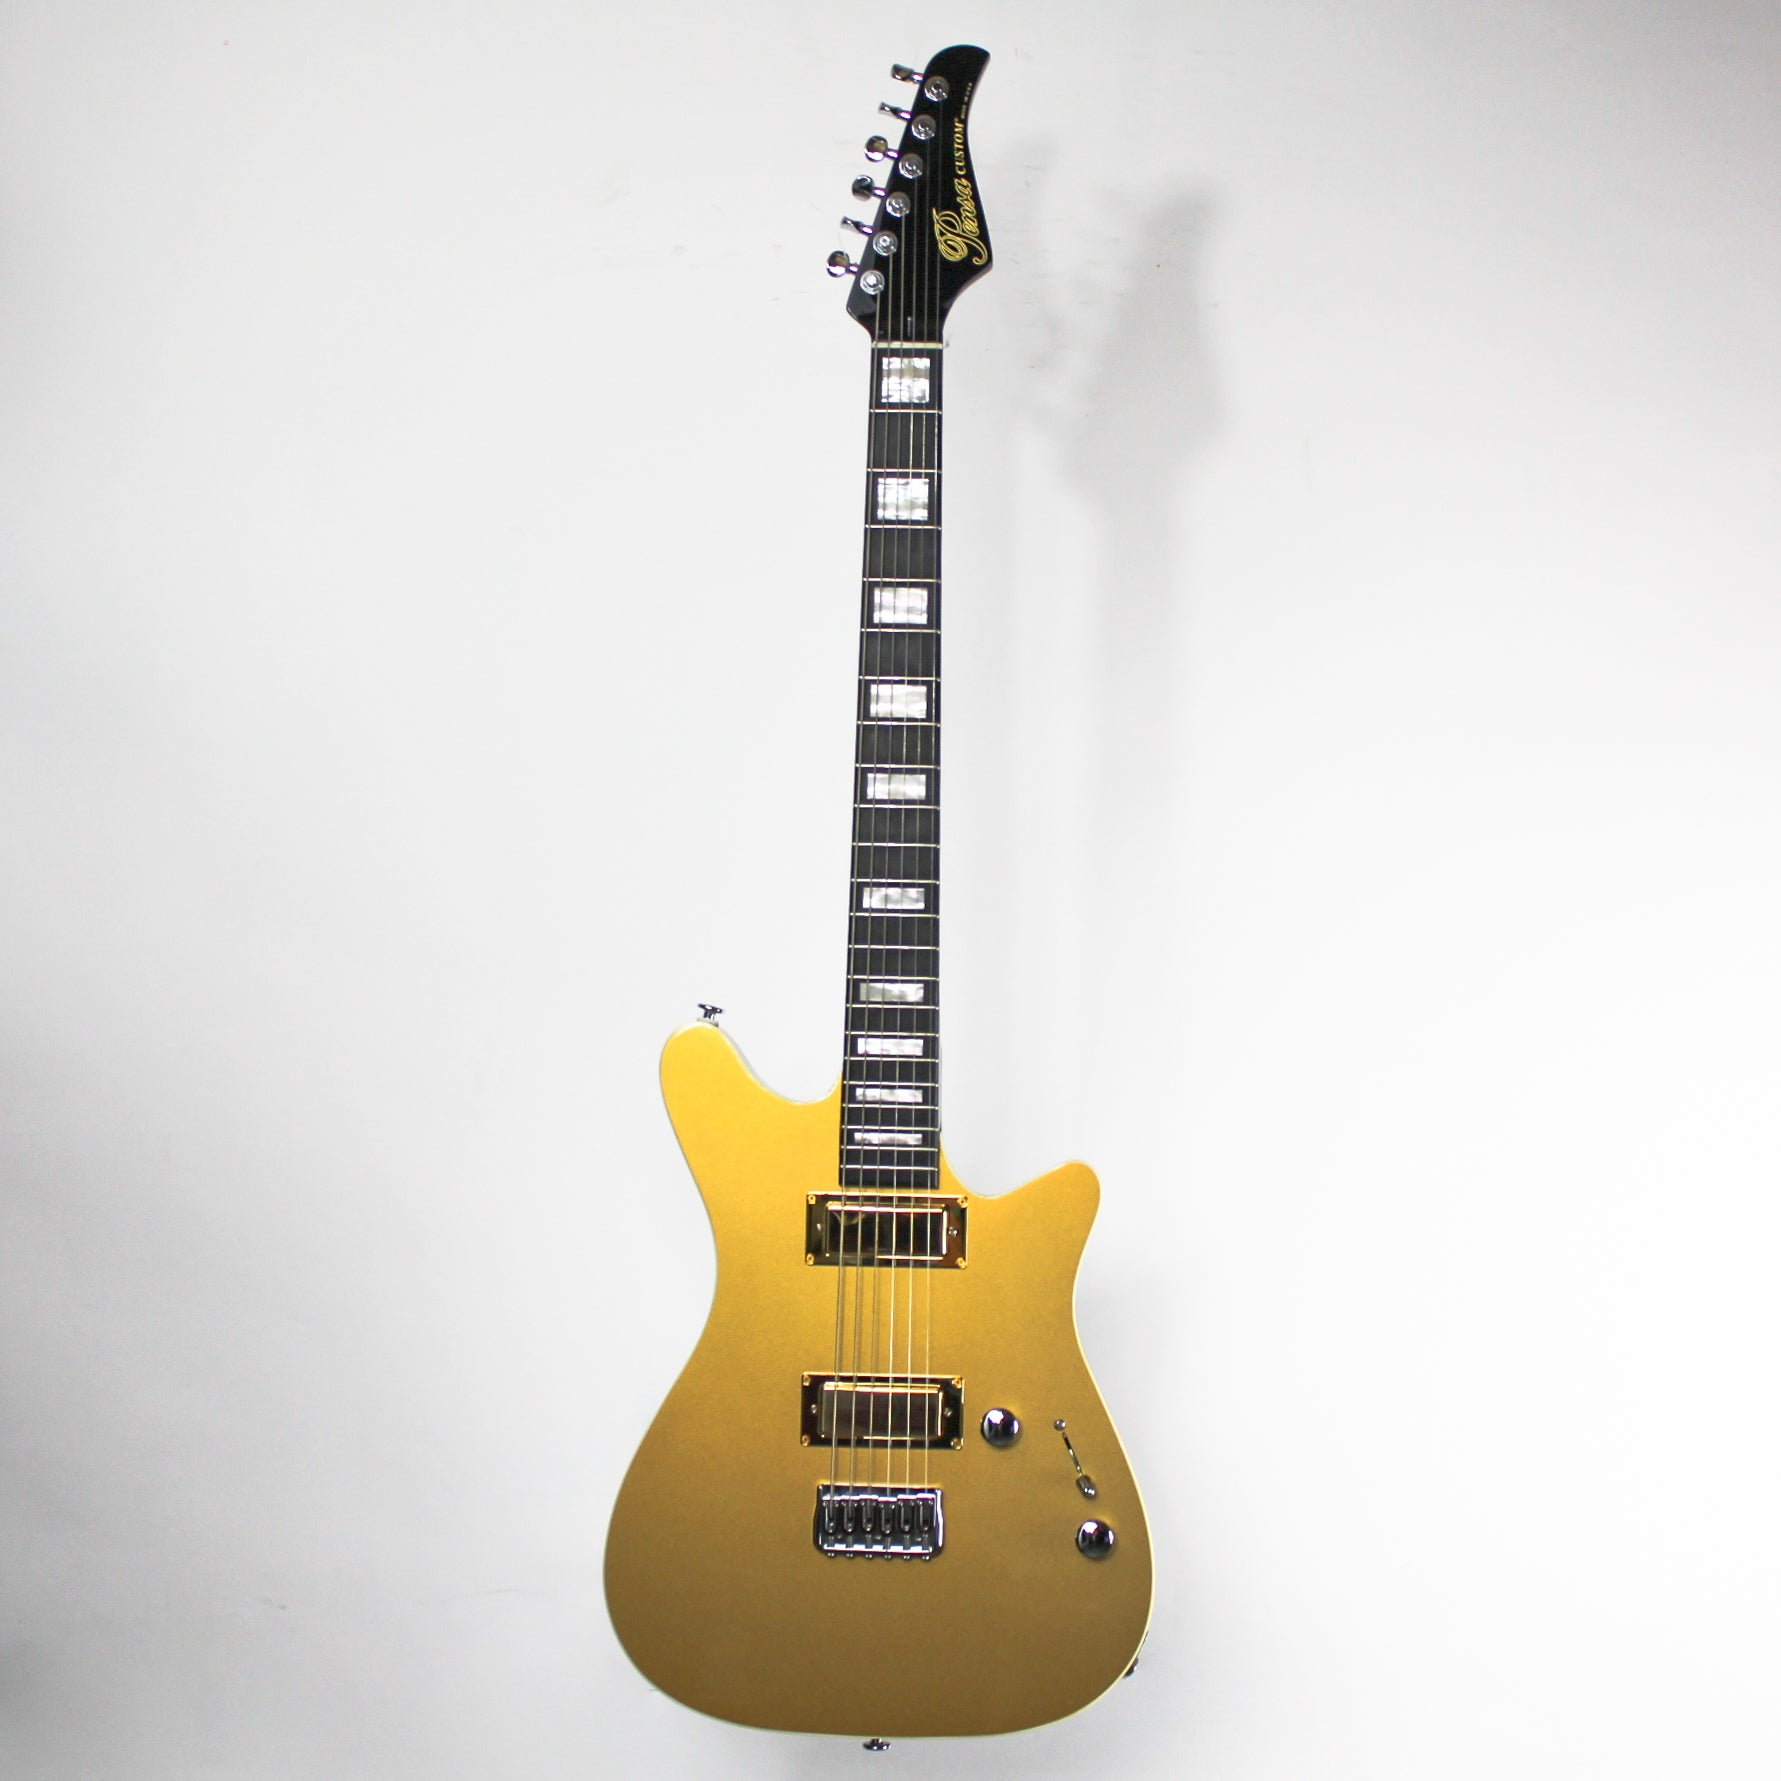 Pensa R Jr. Custom Gold Top 0879